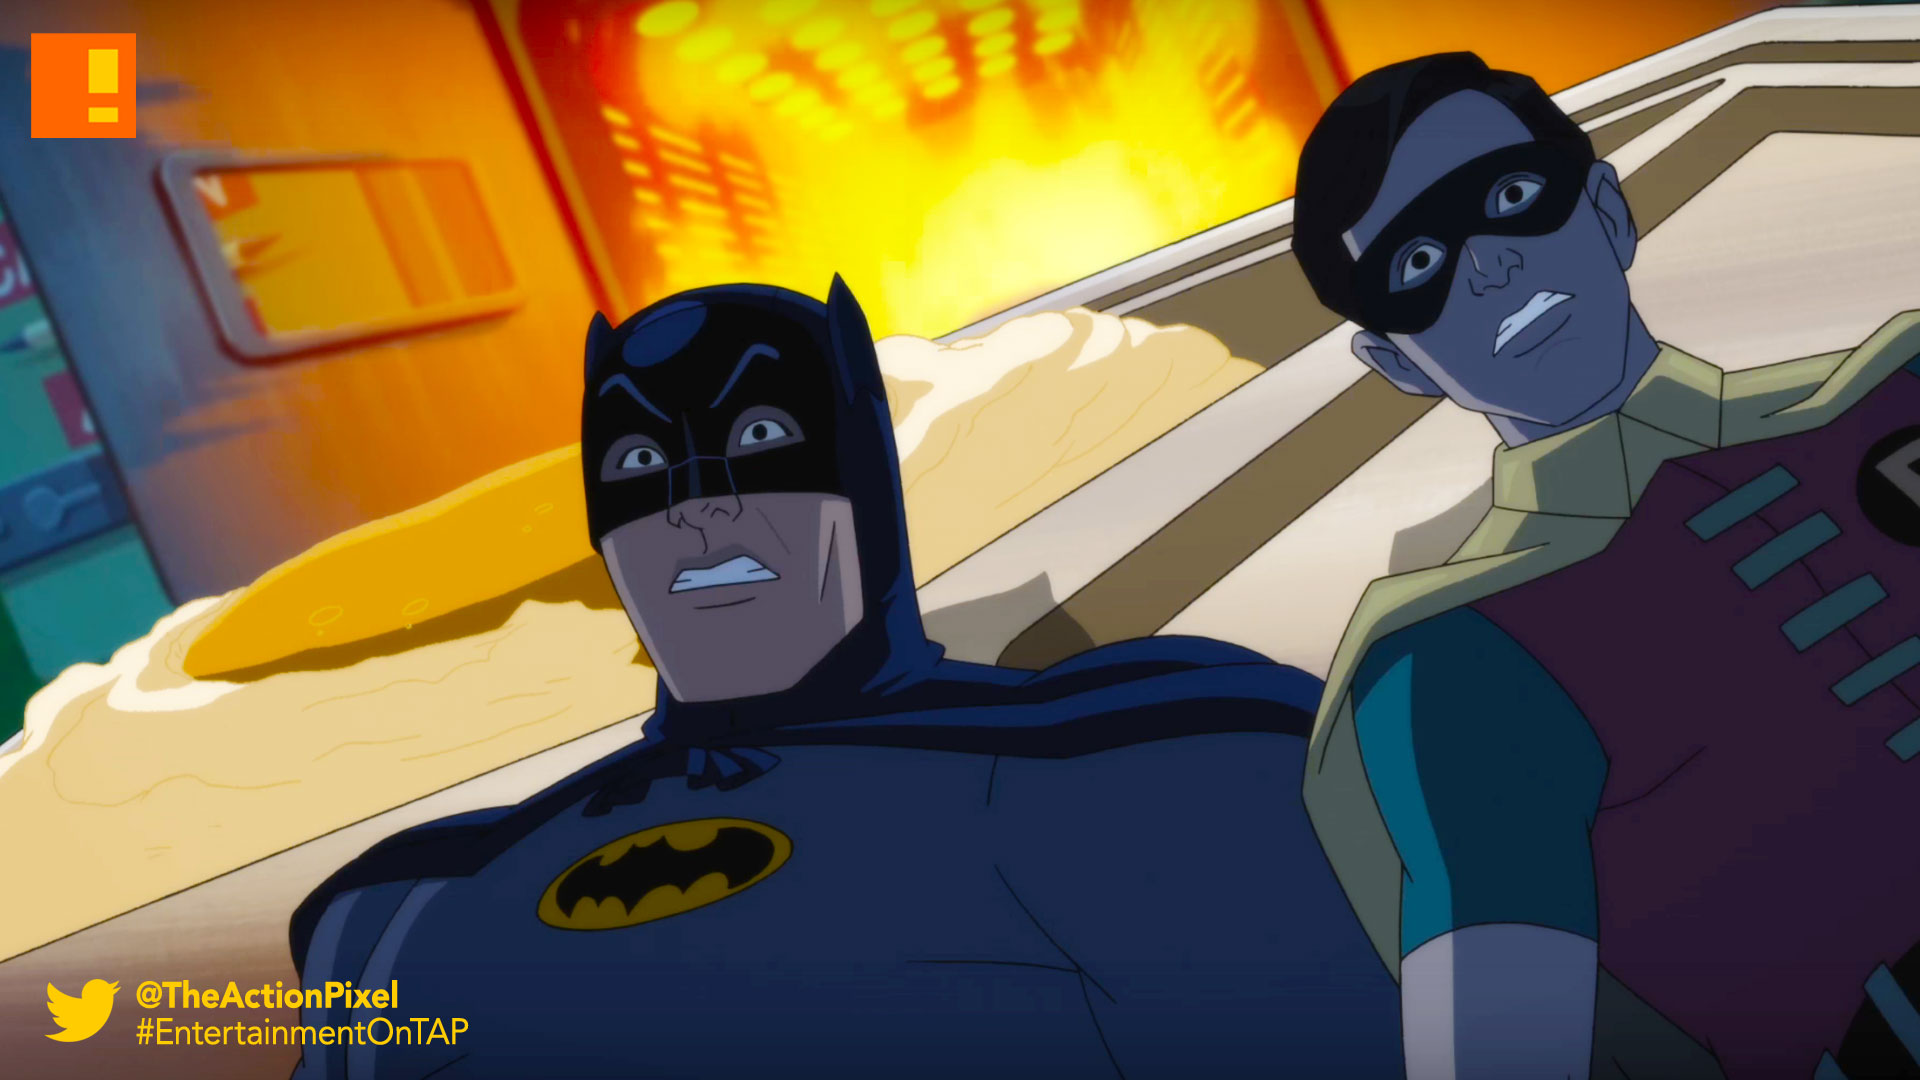 batman: return of the caped crusaders, caped crusaders, batman, dc comics, warner bros. wb animation, animation, robin, adam west, joker, penguin, the riddler, dc comics, dc, gotham, nycc, new york comic con, robin, trailer, wb animation